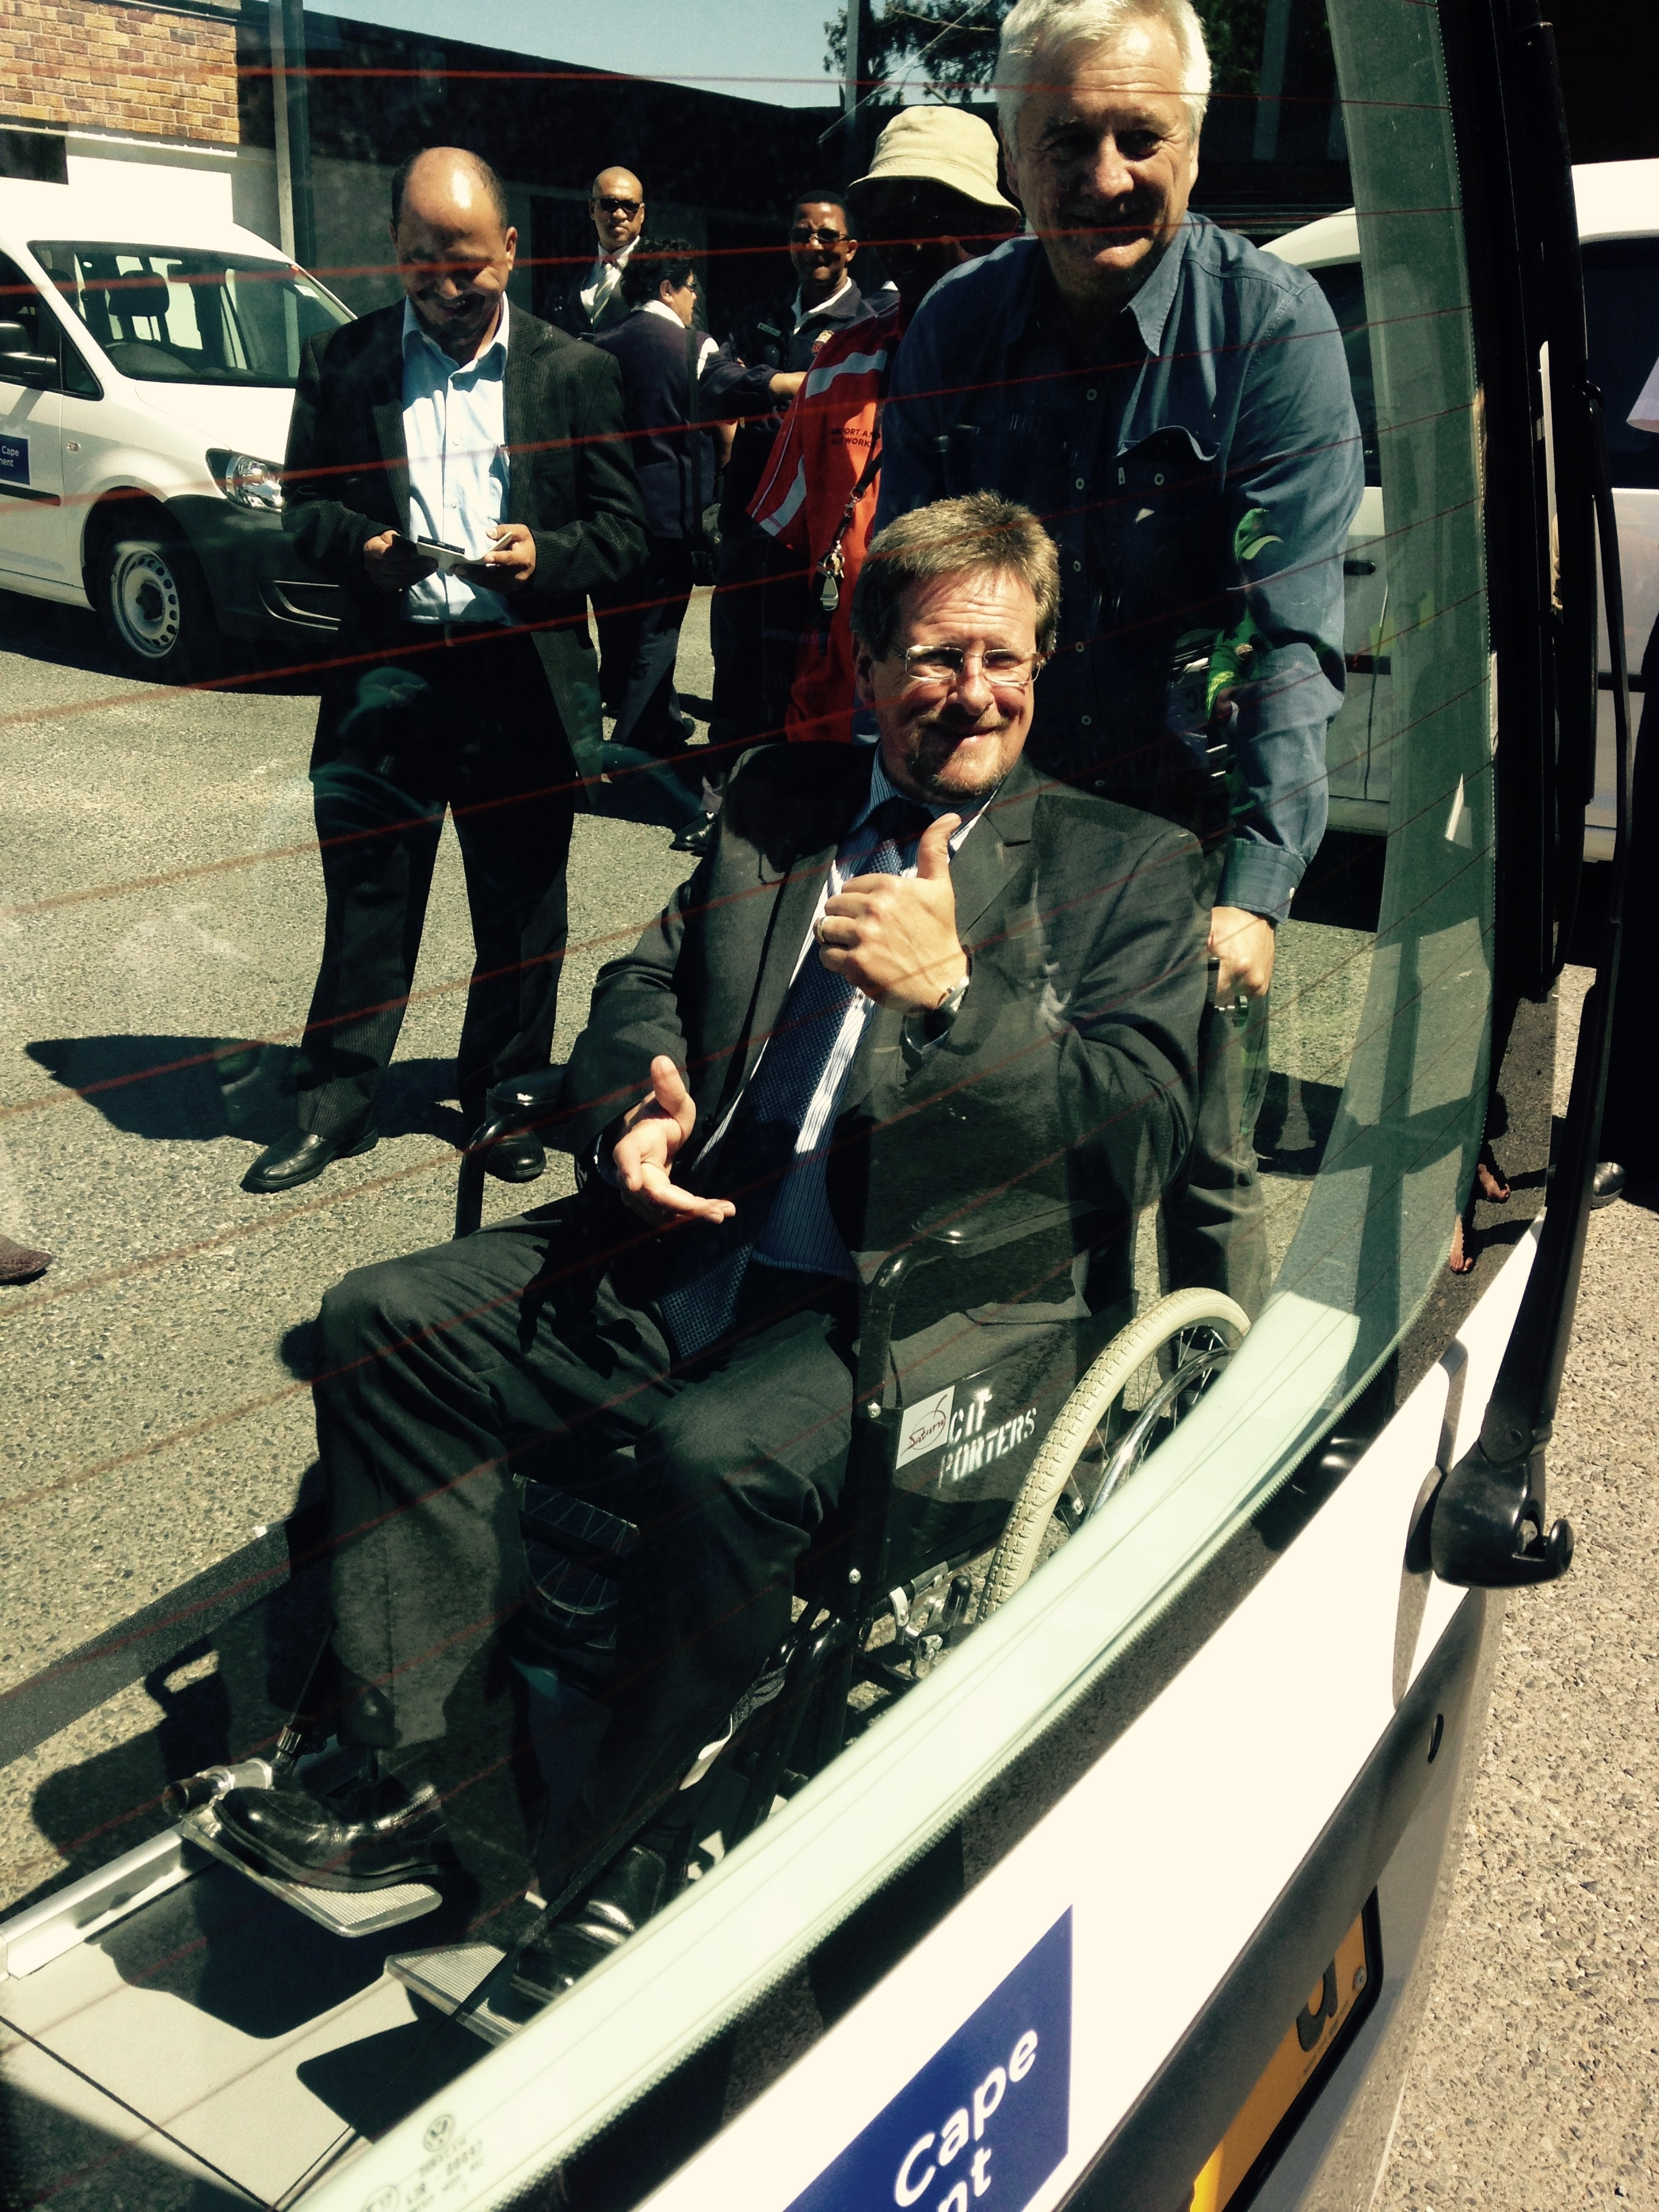 The Western Cape Minister of Health, Theuns Botha, testing the new wheelchair patient transporter that has been added to the HealthNet fleet.